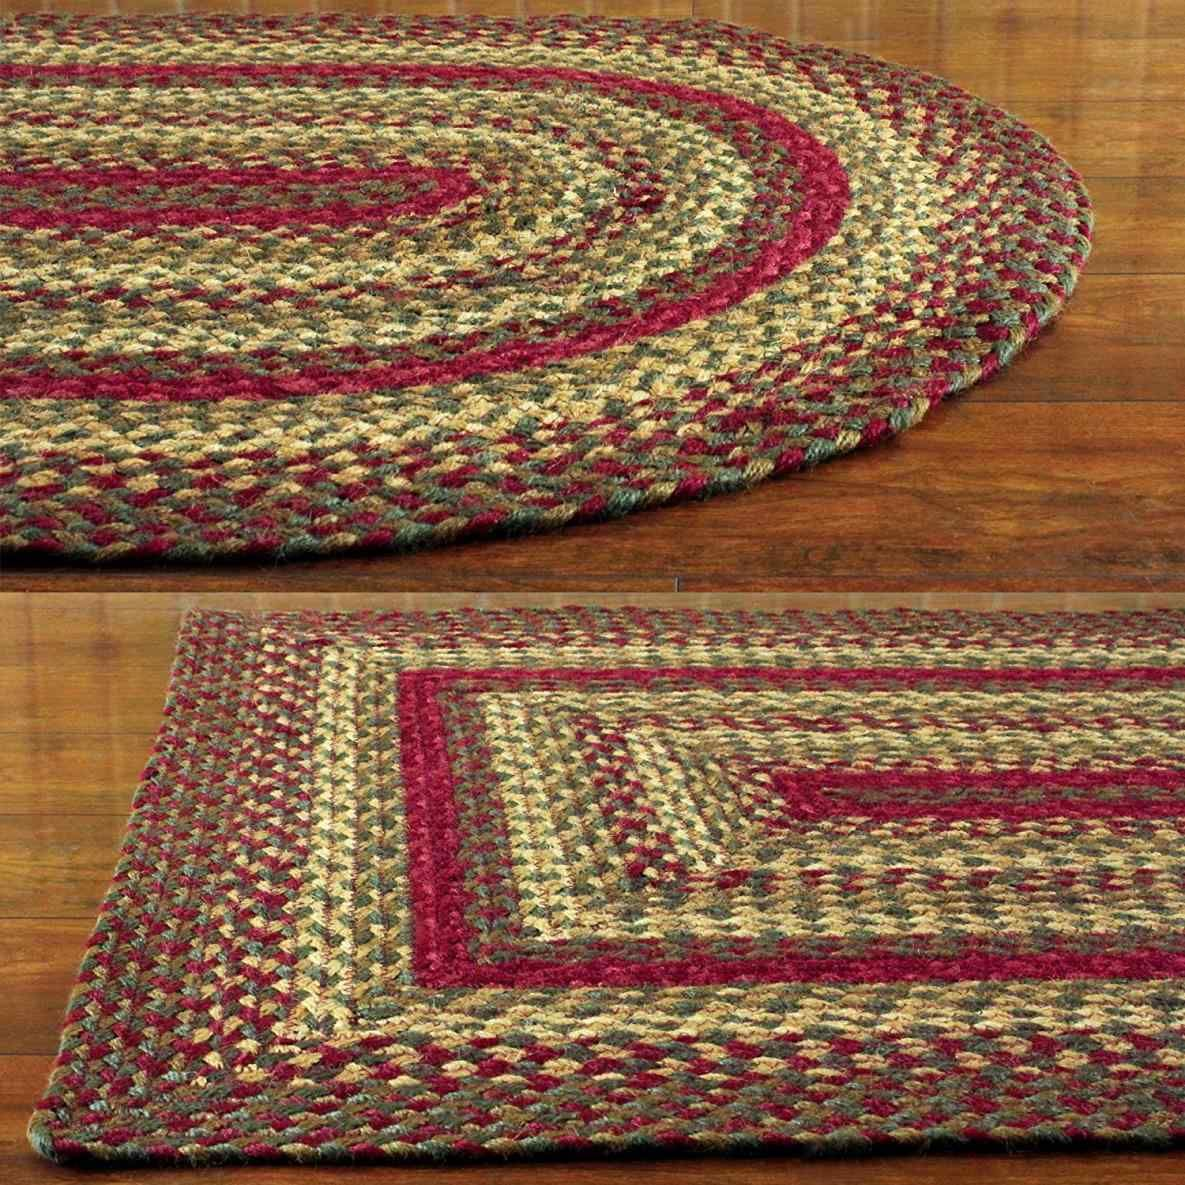 Green Rugs For Sale Braided area rugs, Braided jute rug